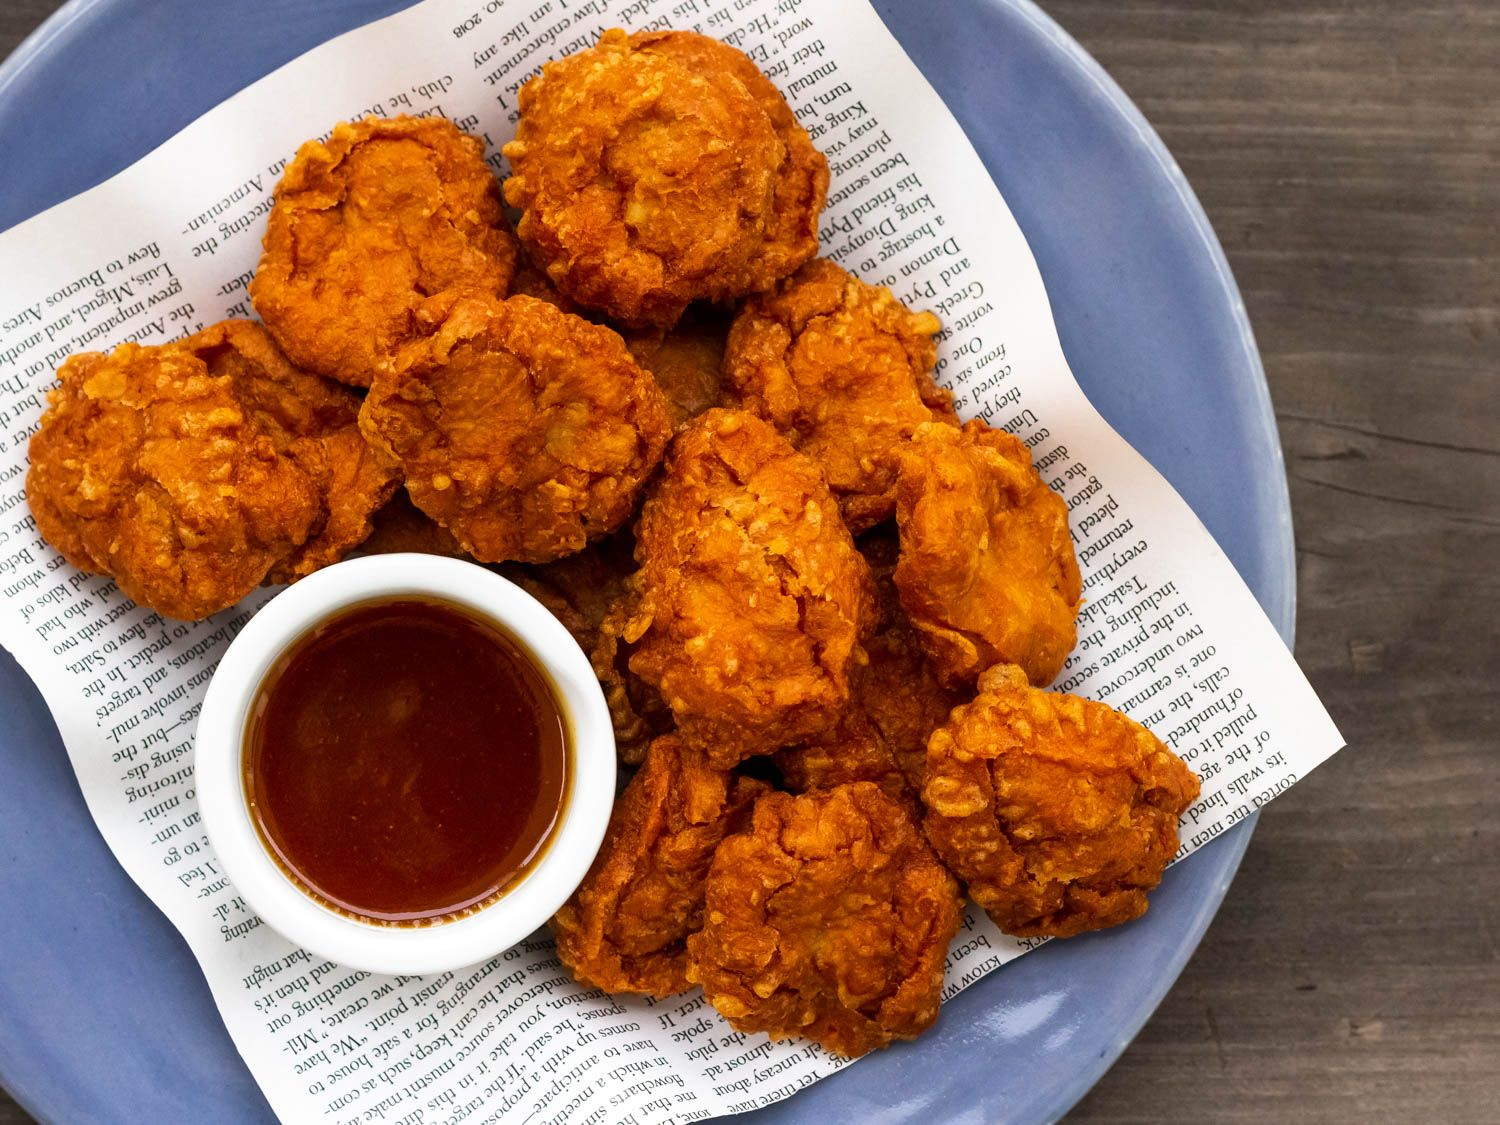 Homemade Chicken Nuggets With Sweet N Sour Sauce Recipe Recipe In 2020 Serious Eats Recipes Chicken Mcnuggets